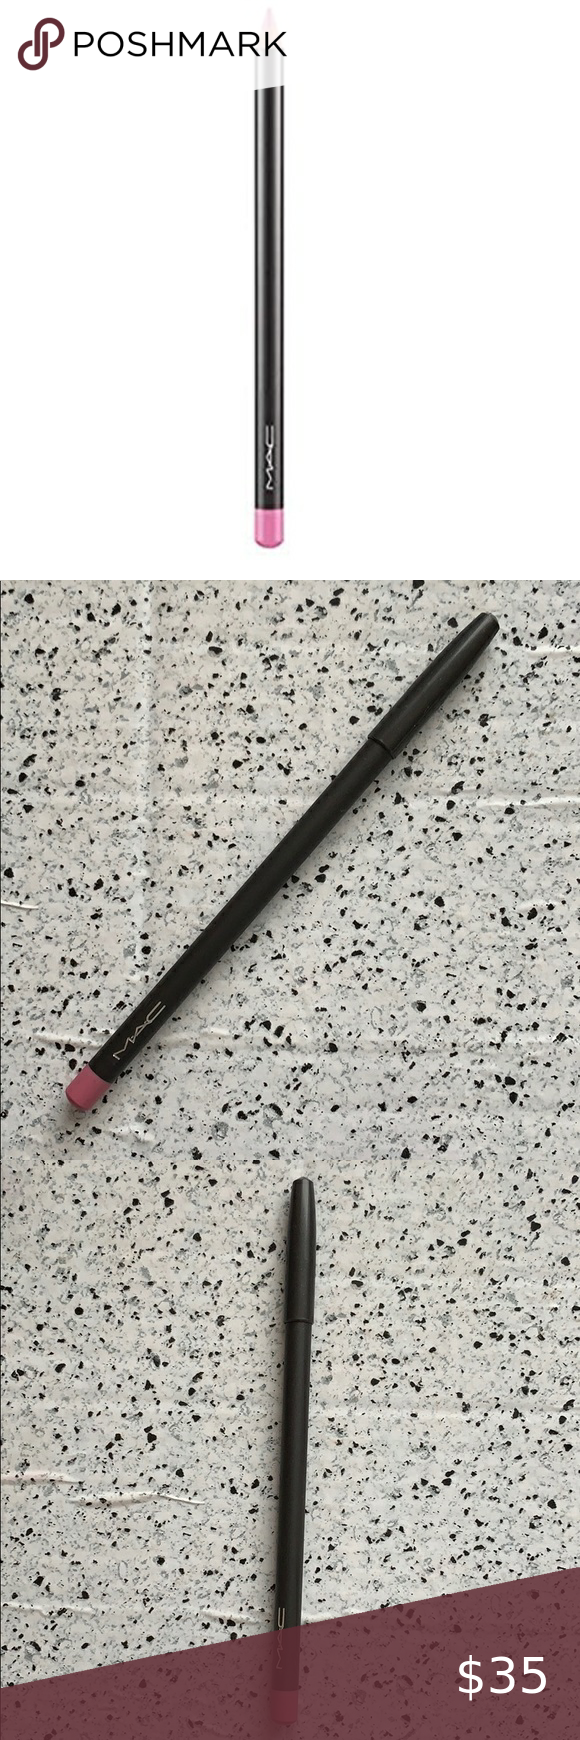 MAC PRO LONGWEAR LIP PENCILS~Many Shades~Discontinued~Rare ... |Mac Stone Lip Liner Discontinued